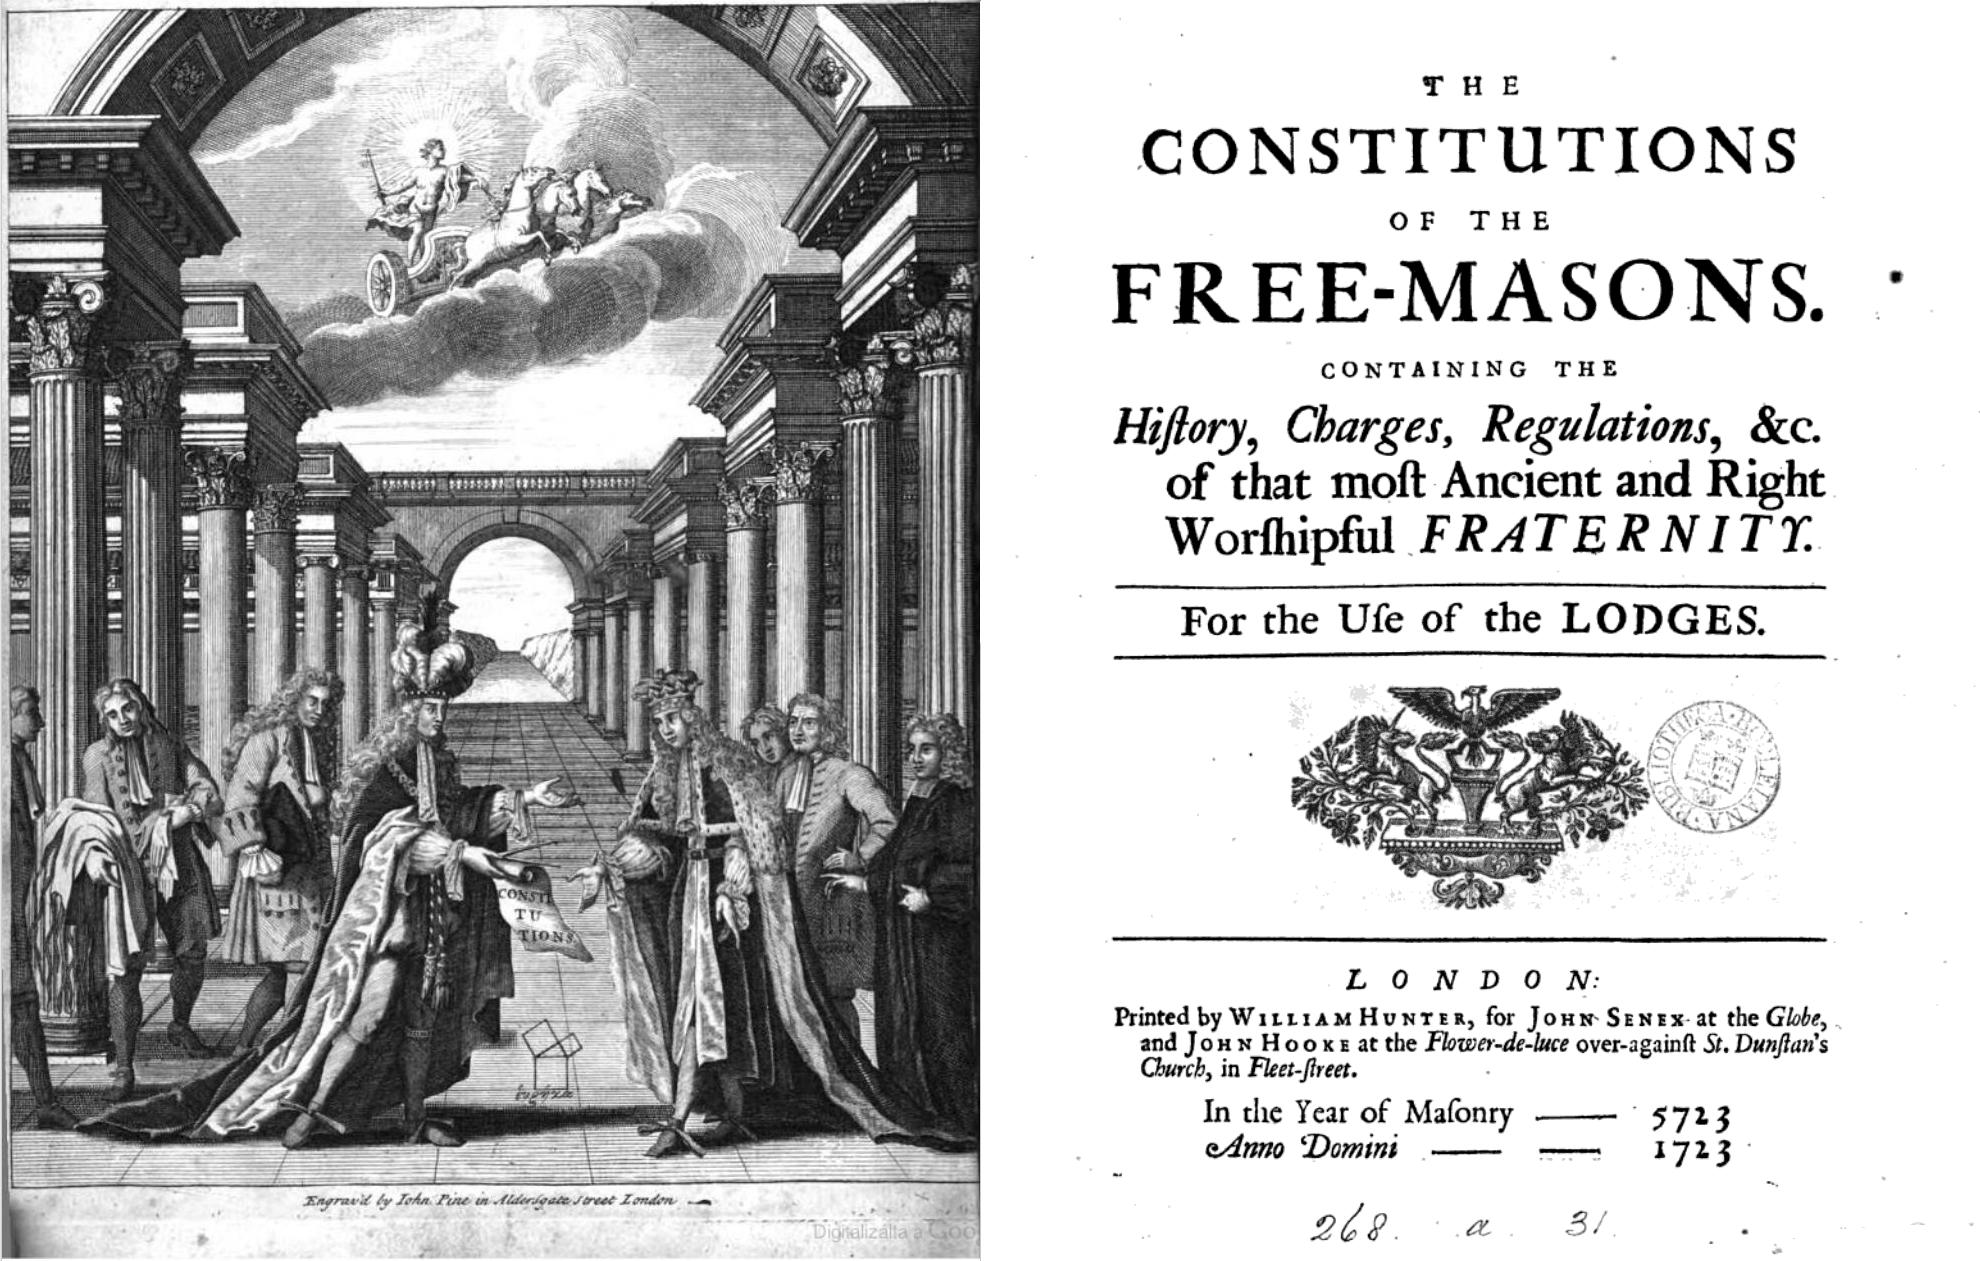 Anderson's Constitutions